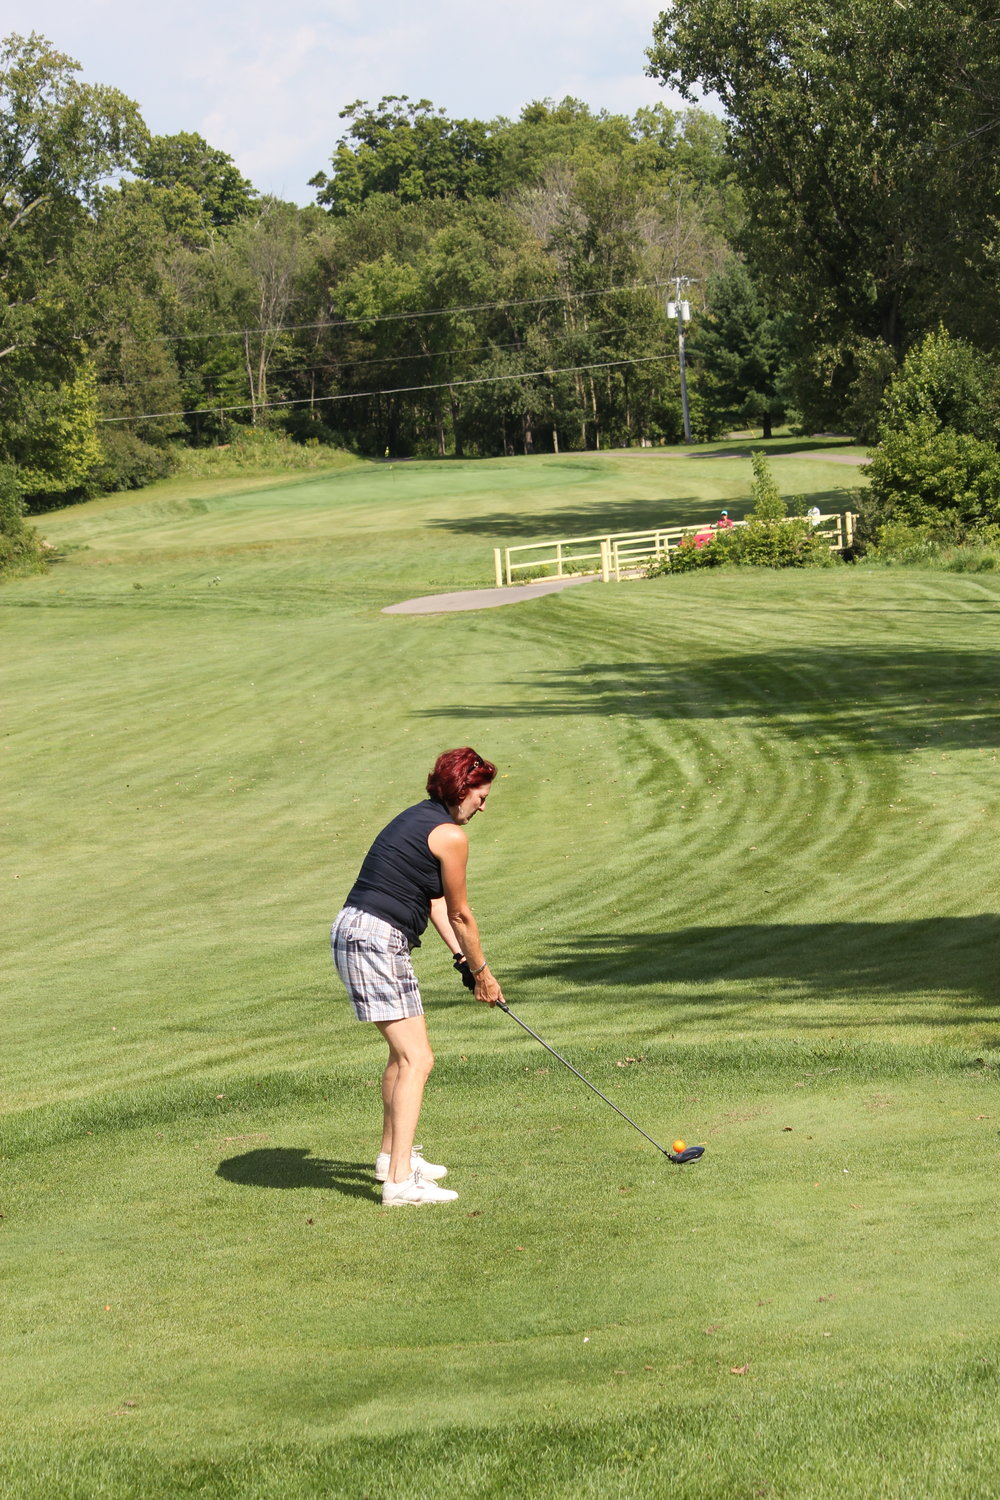 IMG_2239 Terry Doerr FFO Golf Outing 2015 copy.JPG